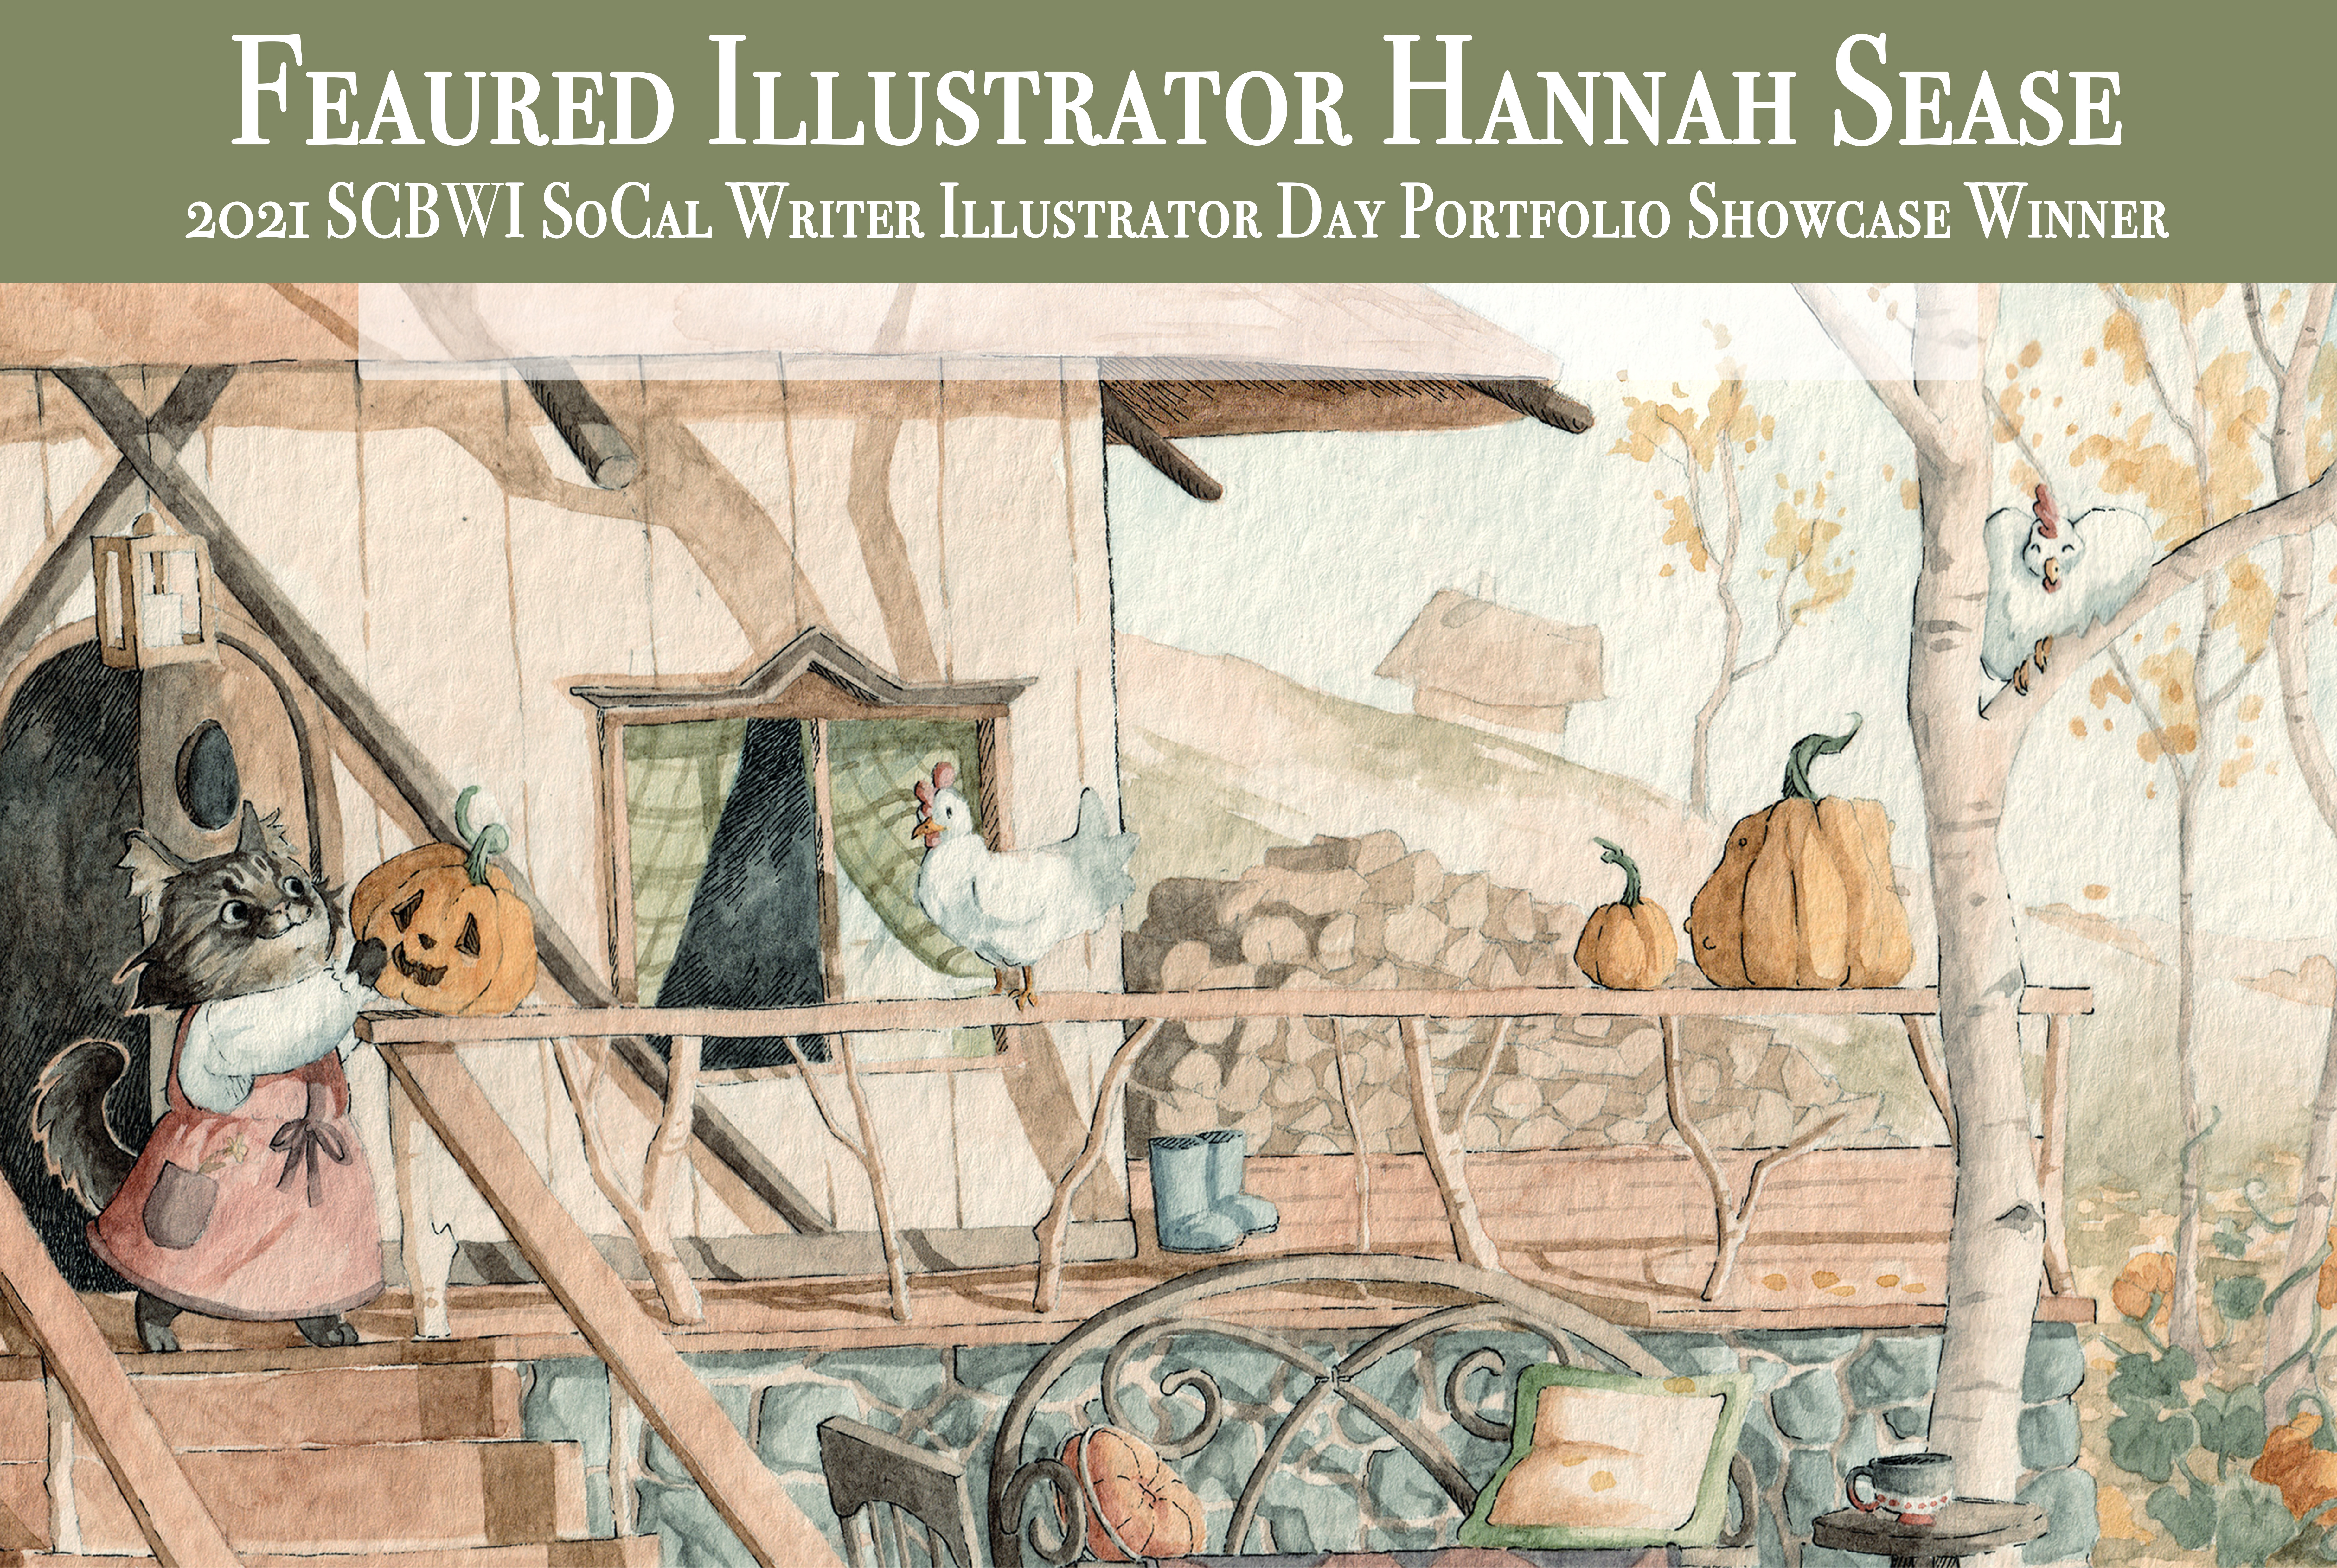 Hannah Sease is especially fond of drawing animals and comfortable furniture, usually together. Much of her time is spent seeking coziness in all its many forms; from campfires to chicken pot pie, to a nap on the couch, a quality that has also found its way into her art through themes of folklore and rural aesthetics. Stemming from a childhood of reading Beatrix Potter, exploring holes under rotten trees, and keeping a roadkill journal, Hannah enjoys being outdoors camping, biking, swimming, and collecting ideas for her art through woodsy adventures. A good adventure calls for a return to home, a familiar hearth, and a cup of tea, a balance that inspires and focuses much of Hannah's work. Nurtured by her younger years spent living around the world with her family, she has garnered a fascination for what we define as home and finding ways to feel at home anywhere. You can visit her atwww.hannahsease.comor on her Instagram @hannahsease.art